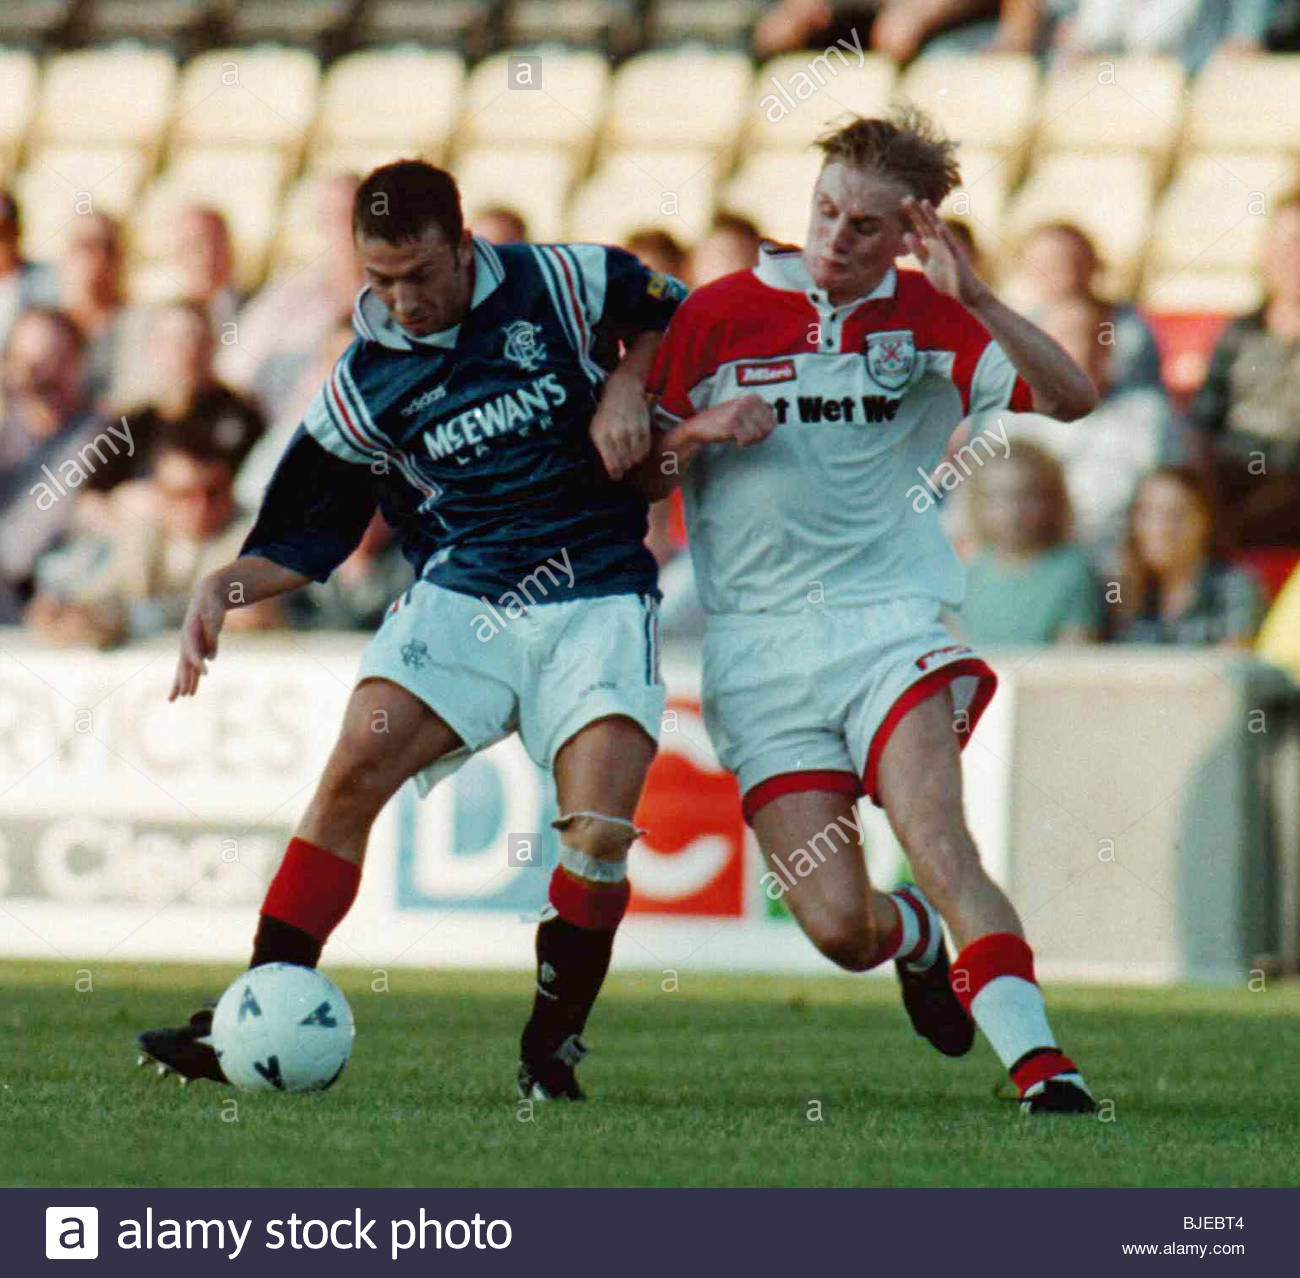 14/08/96 COCA-COLA CUP RND 2 CLYDEBANK V RANGERS (0-3) FIRHILL - GLASGOW Gary Teale (right) challenges Rangers midfielder - Stock Image